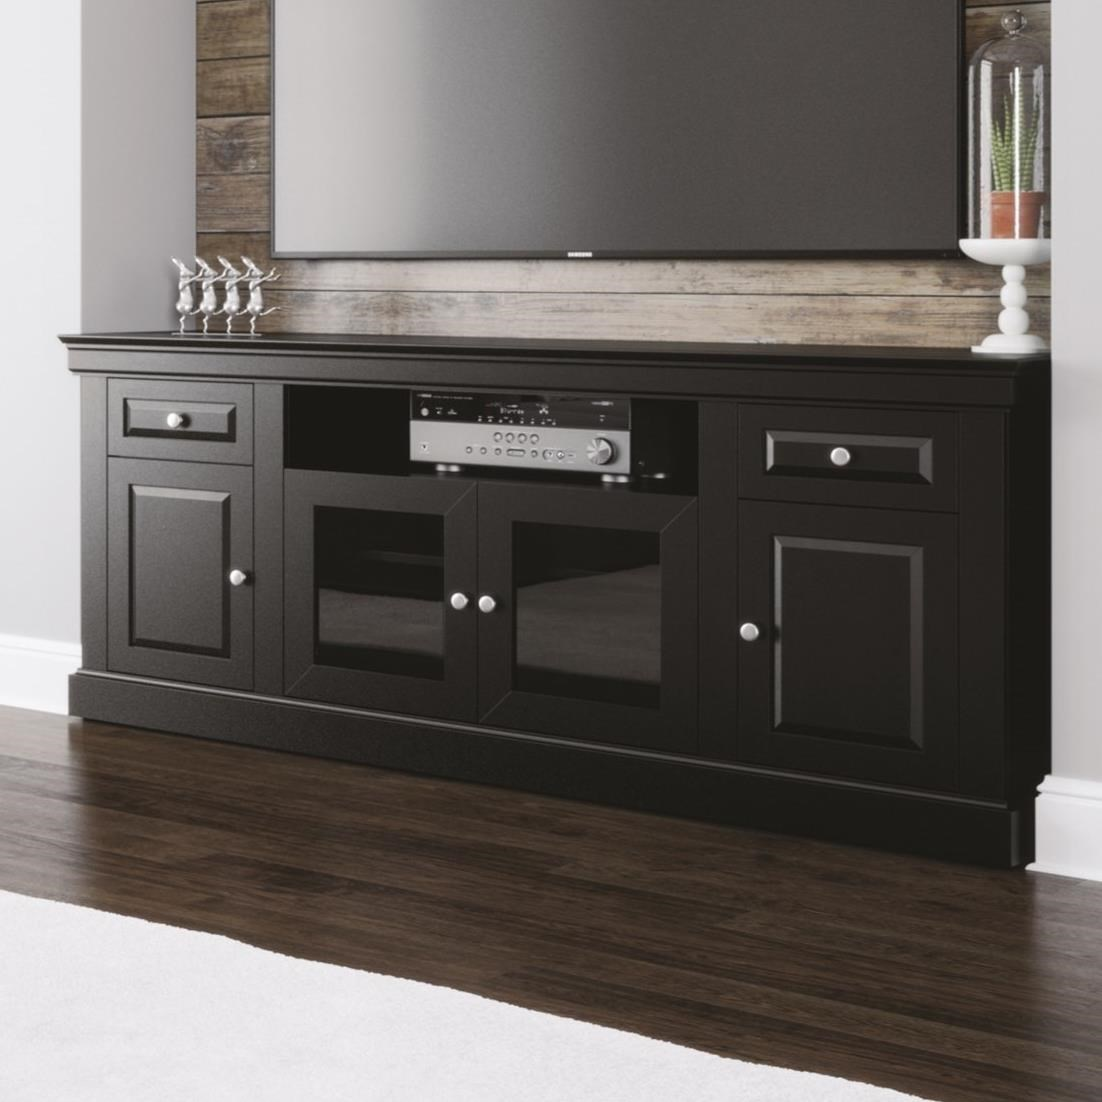 Canadel Living Customizable Media Unit by Canadel at Dinette Depot